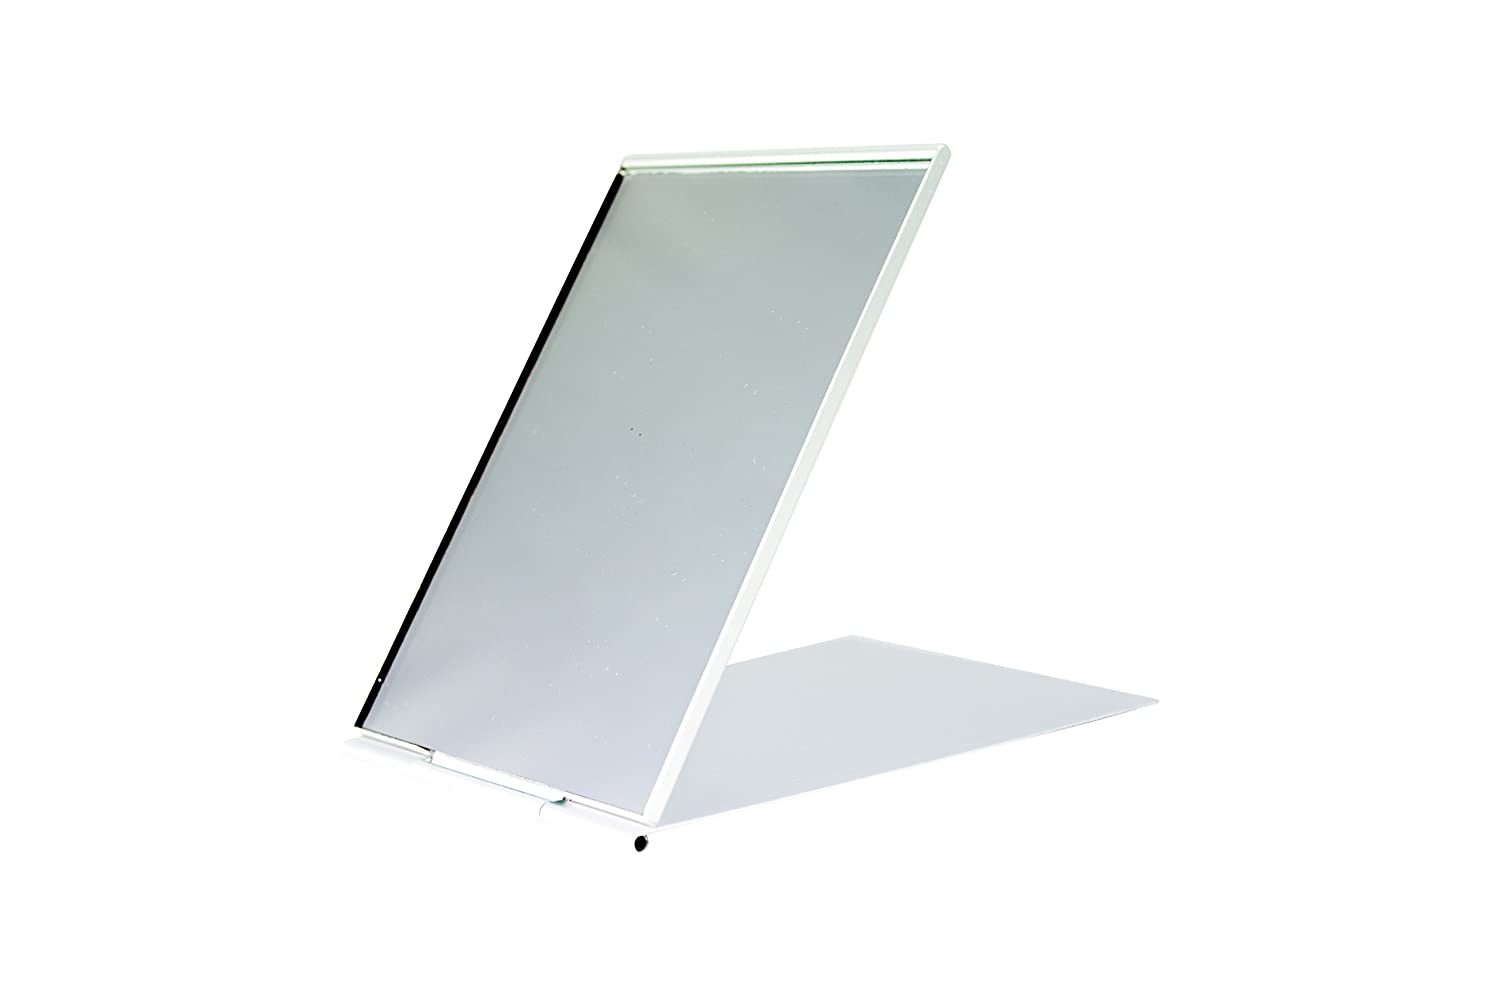 Folding Travel Mirror (10x6.5cm) - Small Unisex Stainless Steel Folding Mirror With Stand by EpicTraveller.co | Ideal for Camping, Men, Women, Flying, Shaving, Travelling, Grooming and Makeup